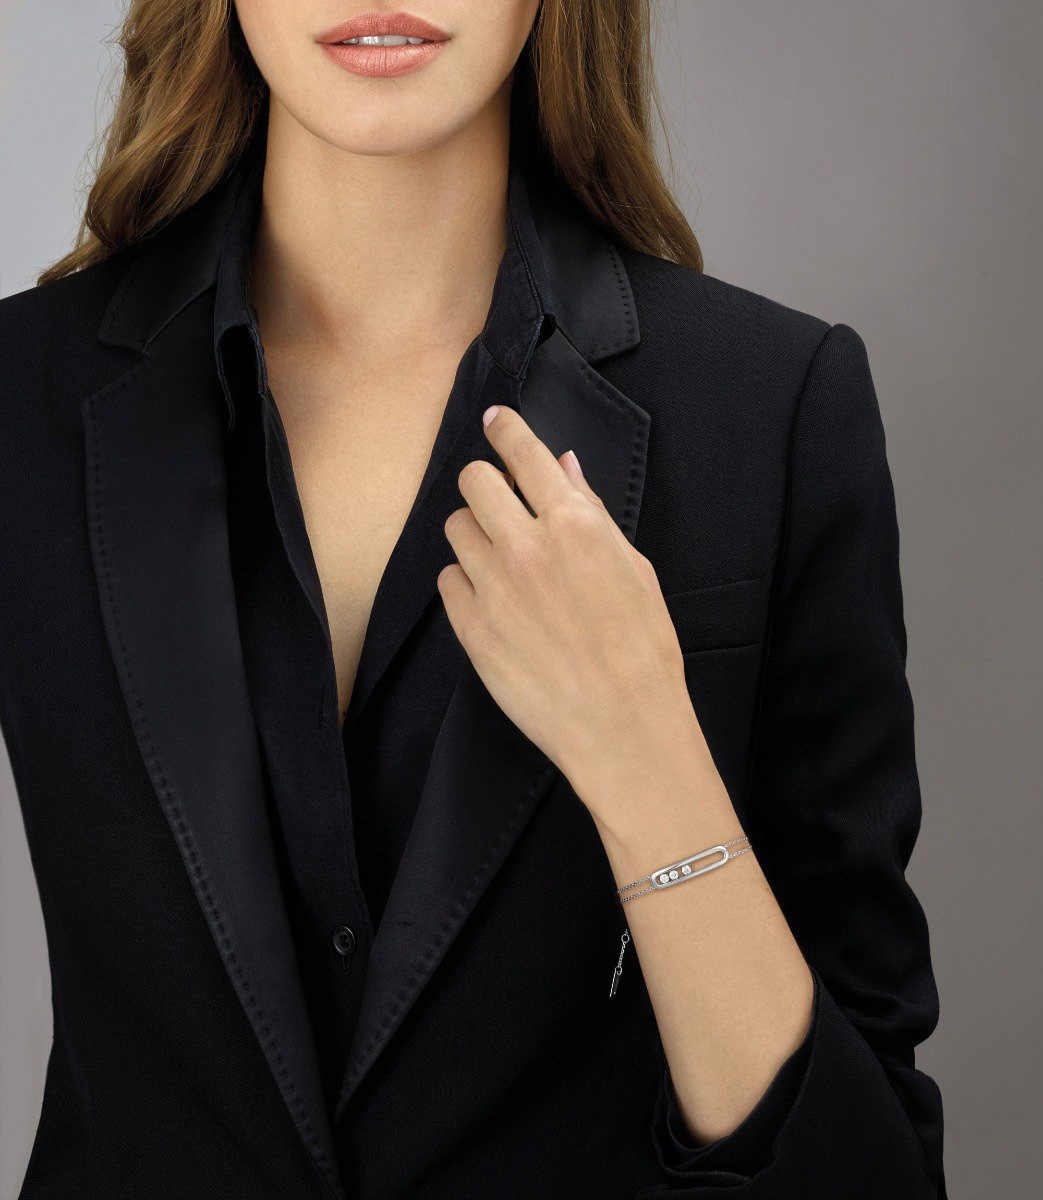 Messika Move Classique Cage Chain Bracelet in 18K Gold on model